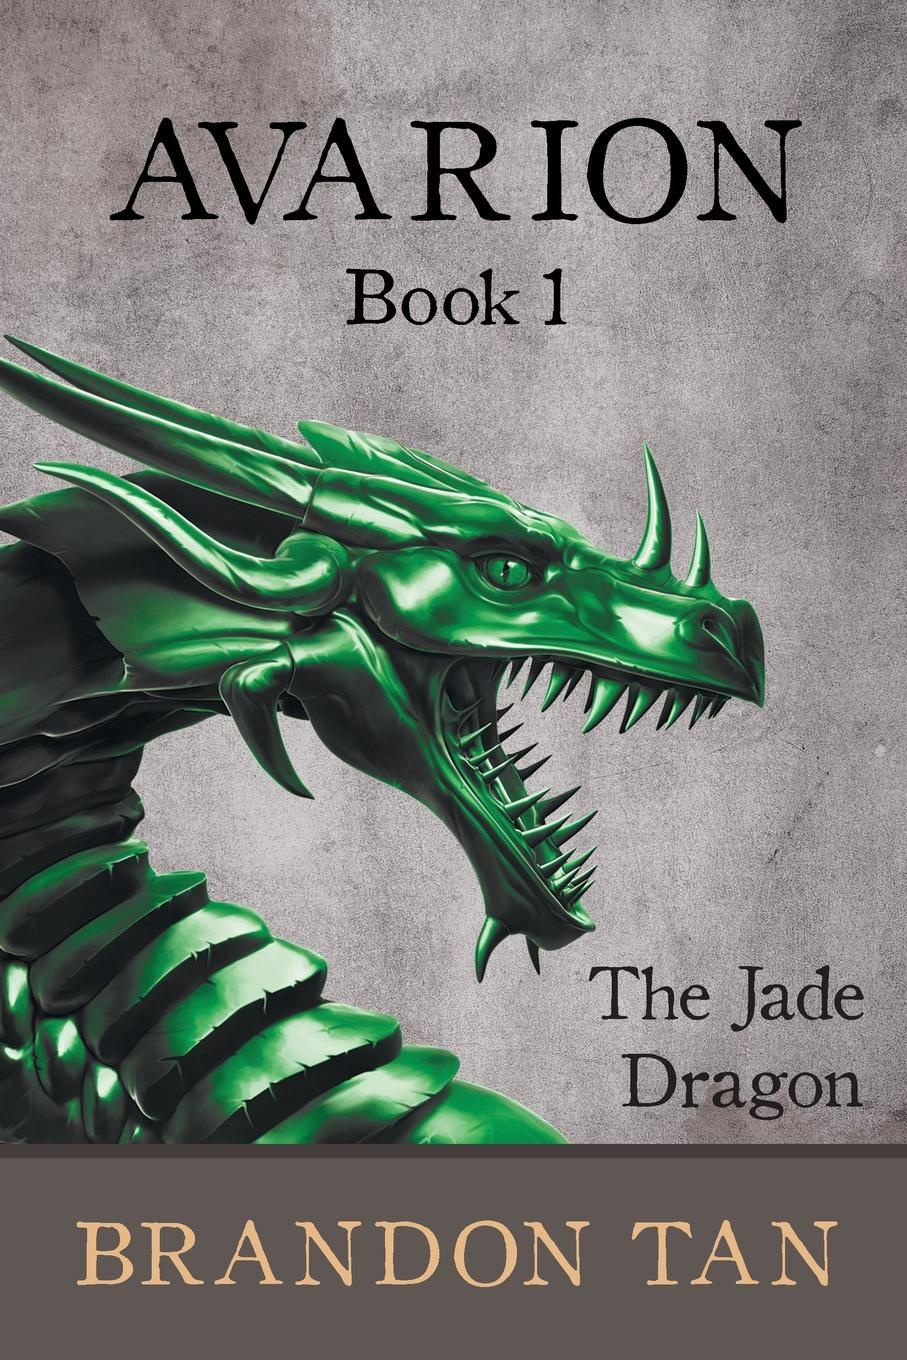 Avarion Book 1. The Jade Dragon